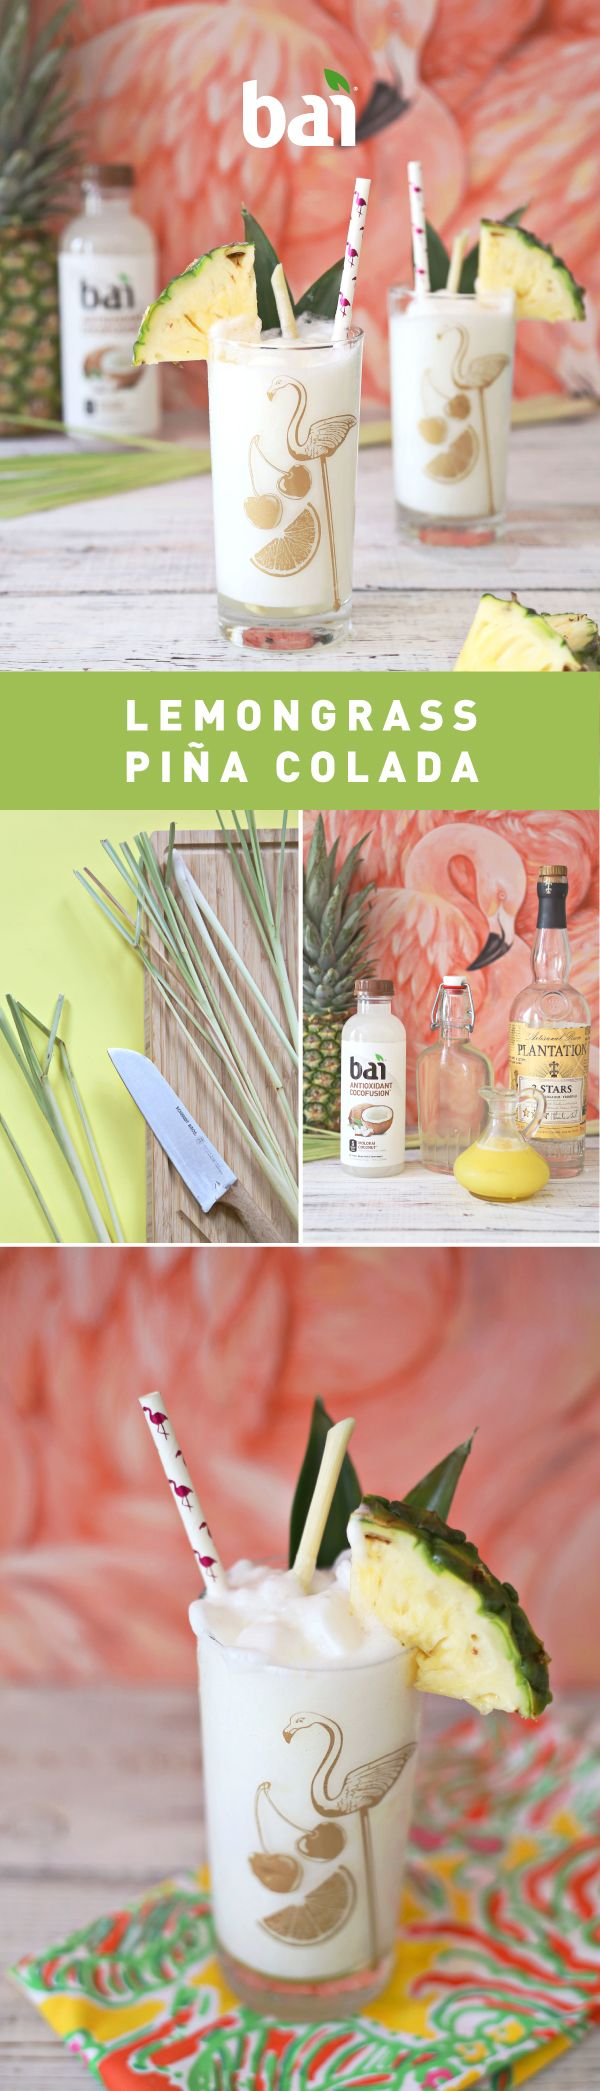 This Pina Colada recipe is the perfect blend of Pineapple flavor that will bring your guests' taste buds to the beach.